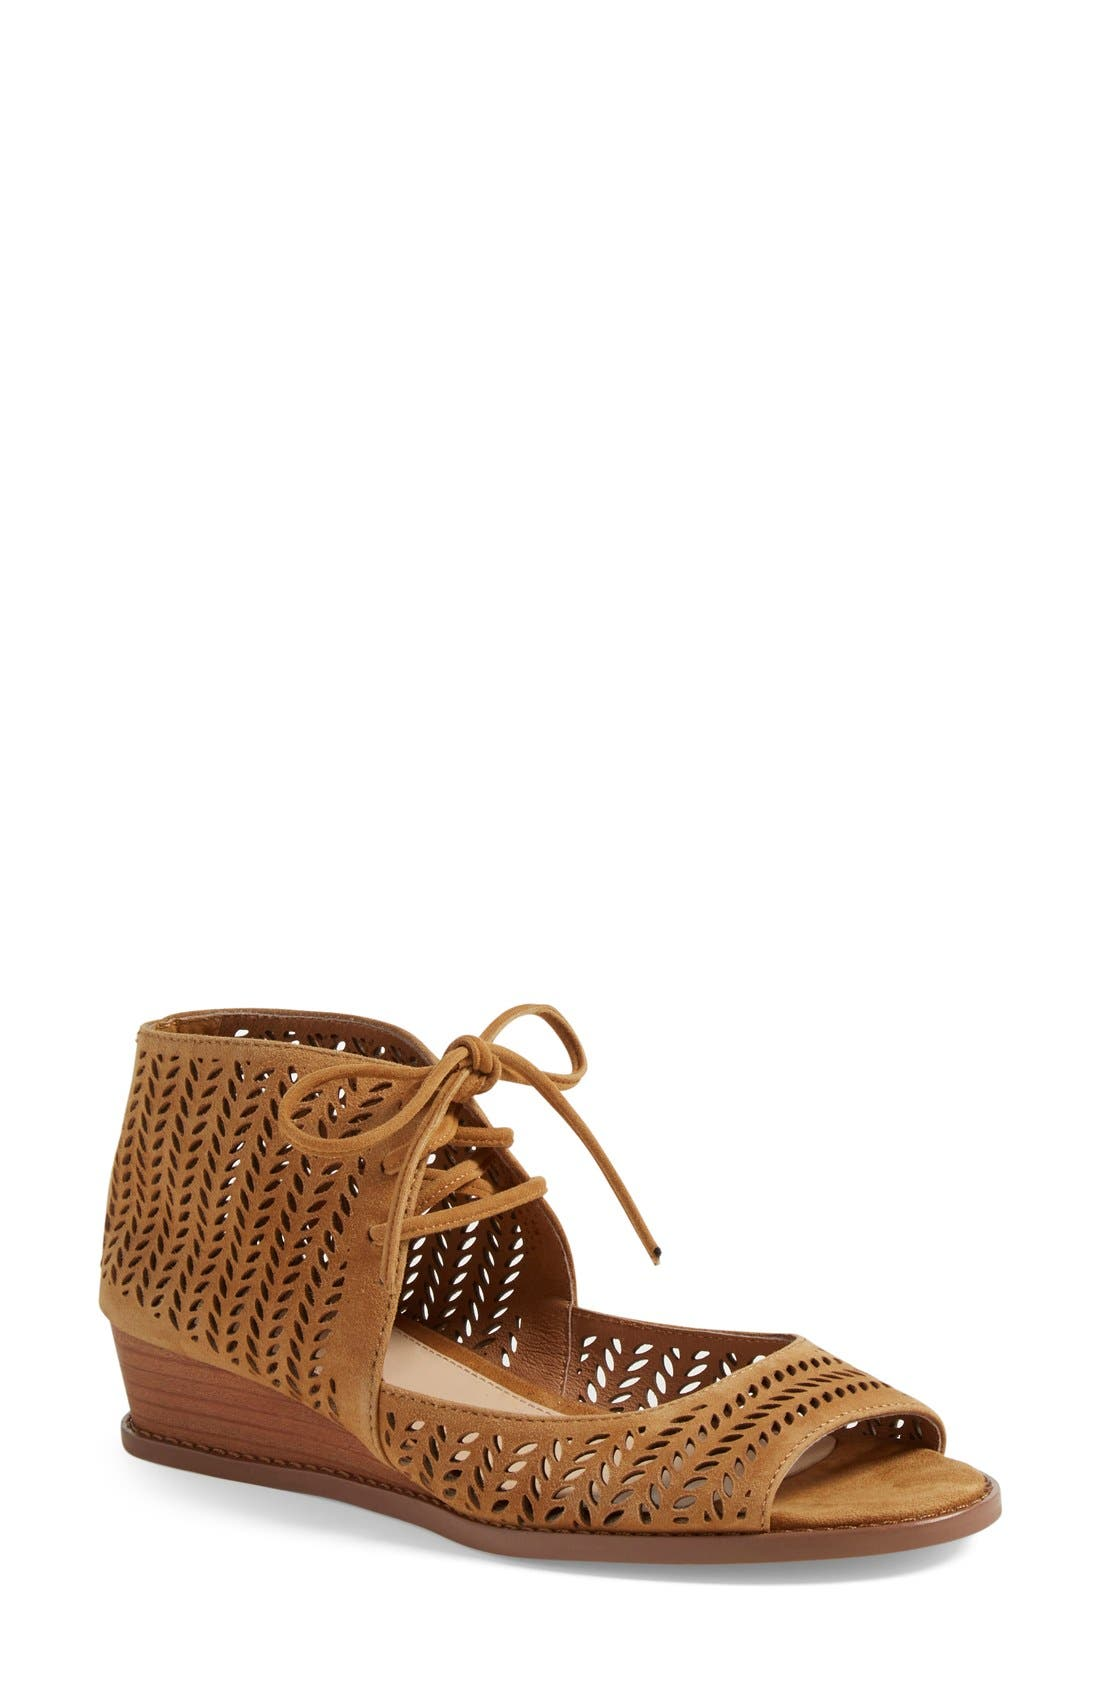 'Remme' Cutout Lace-Up Wedge Sandal,                         Main,                         color, New Rust Suede